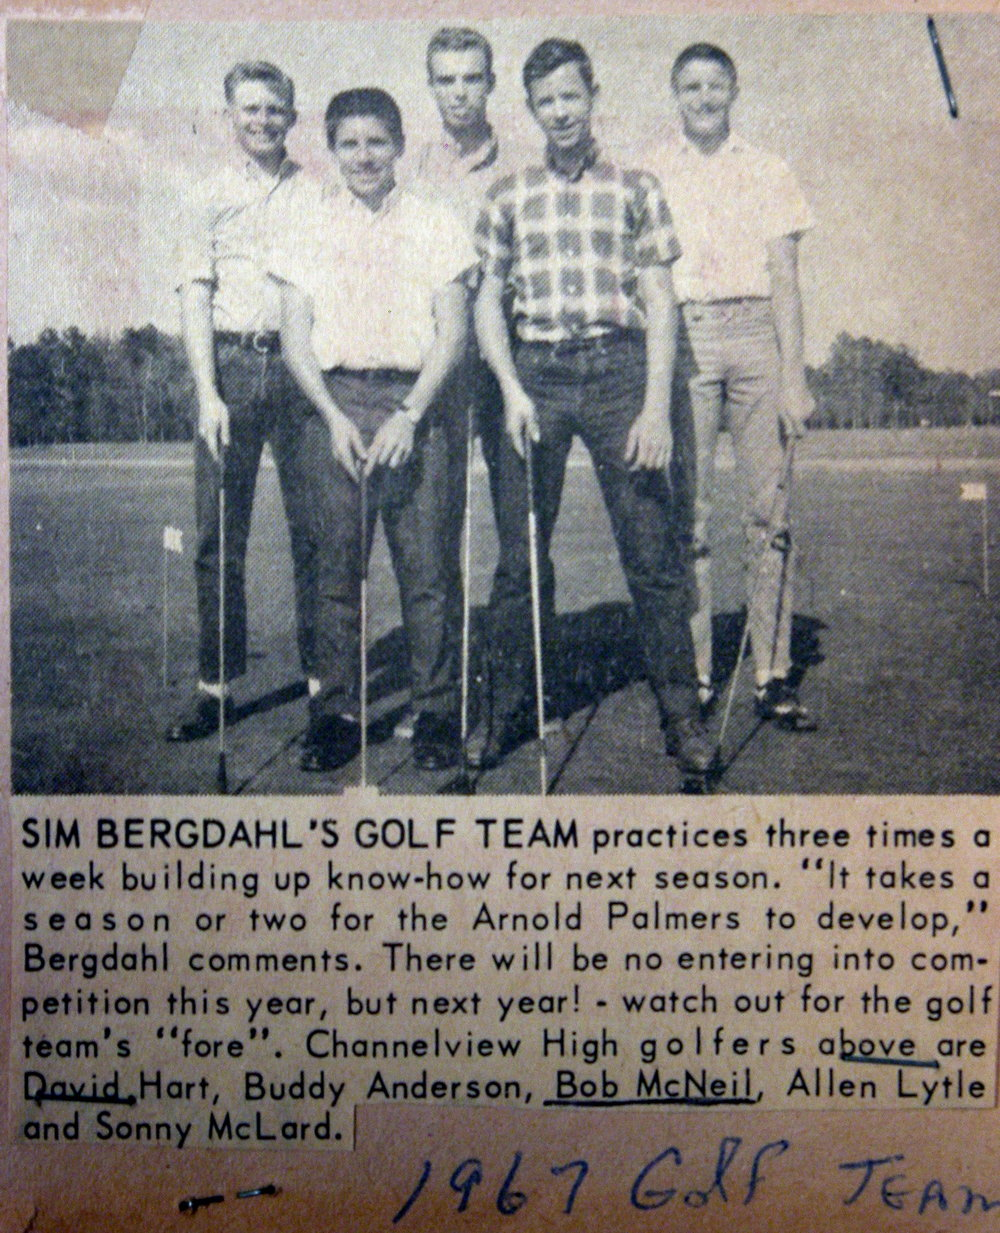 Bob McNeil - 1967 - Age 18 - Twelfth Grade - Channelview High School - Golf Team Picture